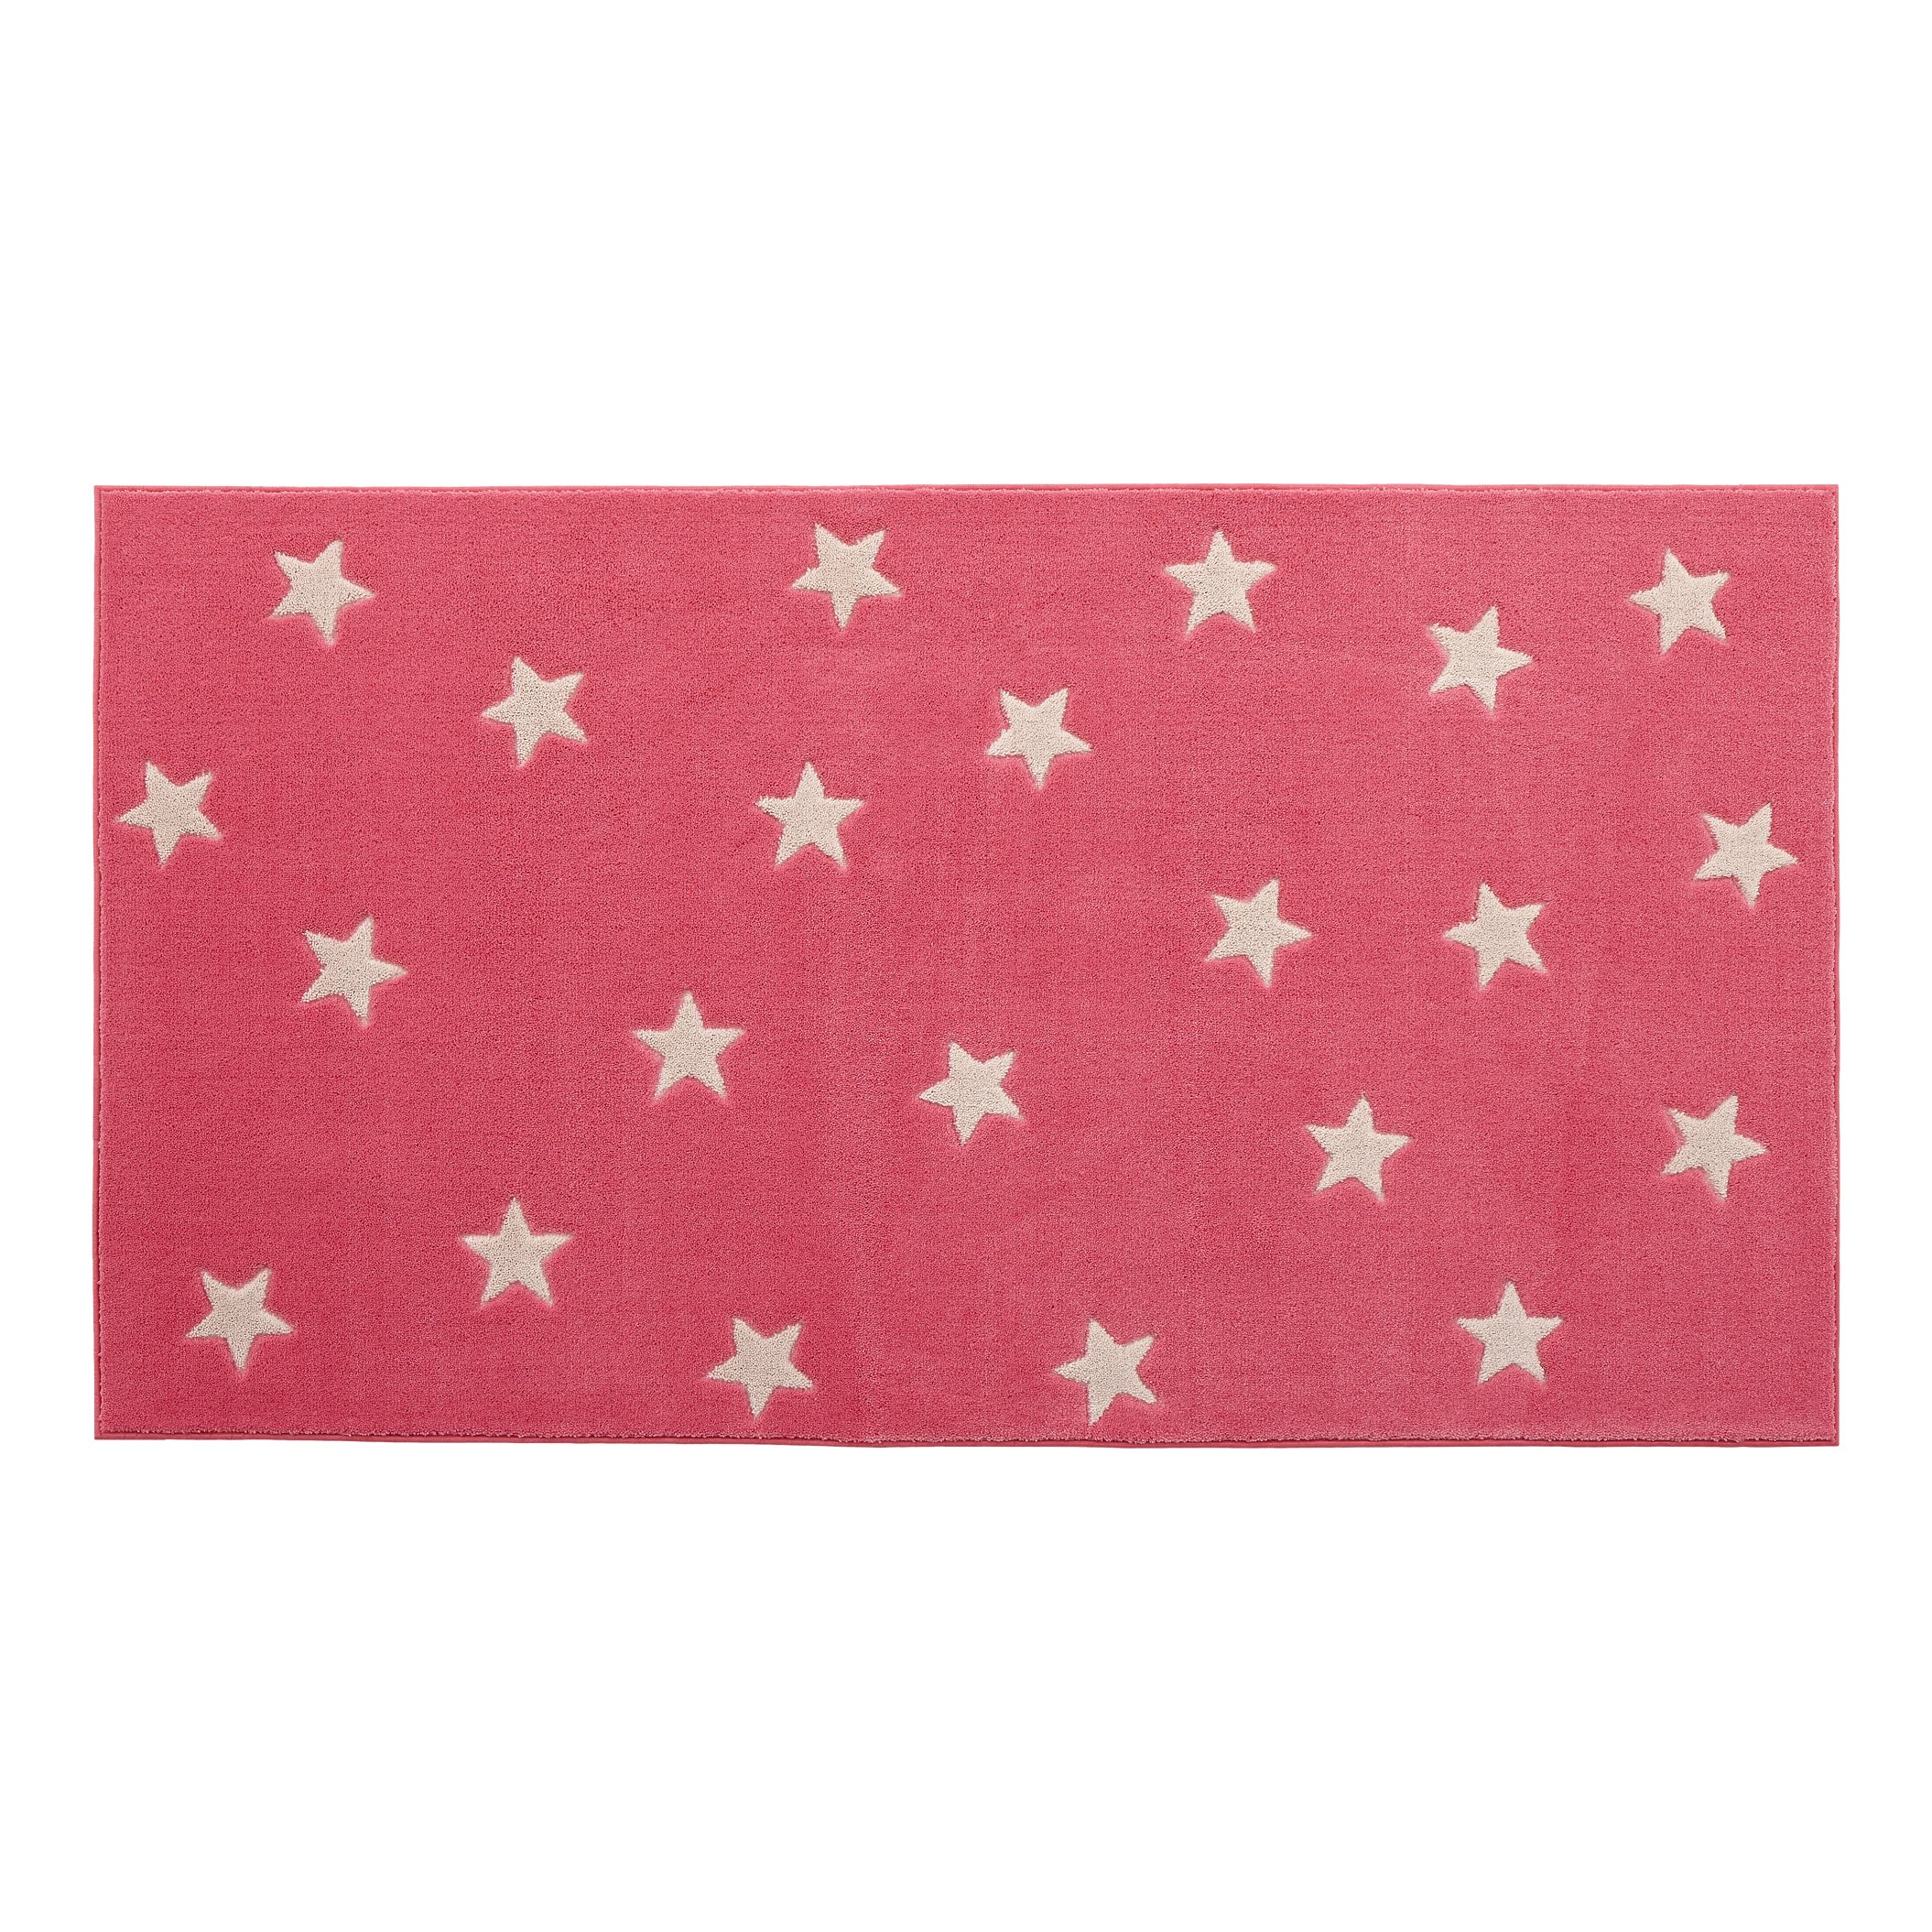 Galaxy Star Rug - Pink by Lifetime Kidsrooms